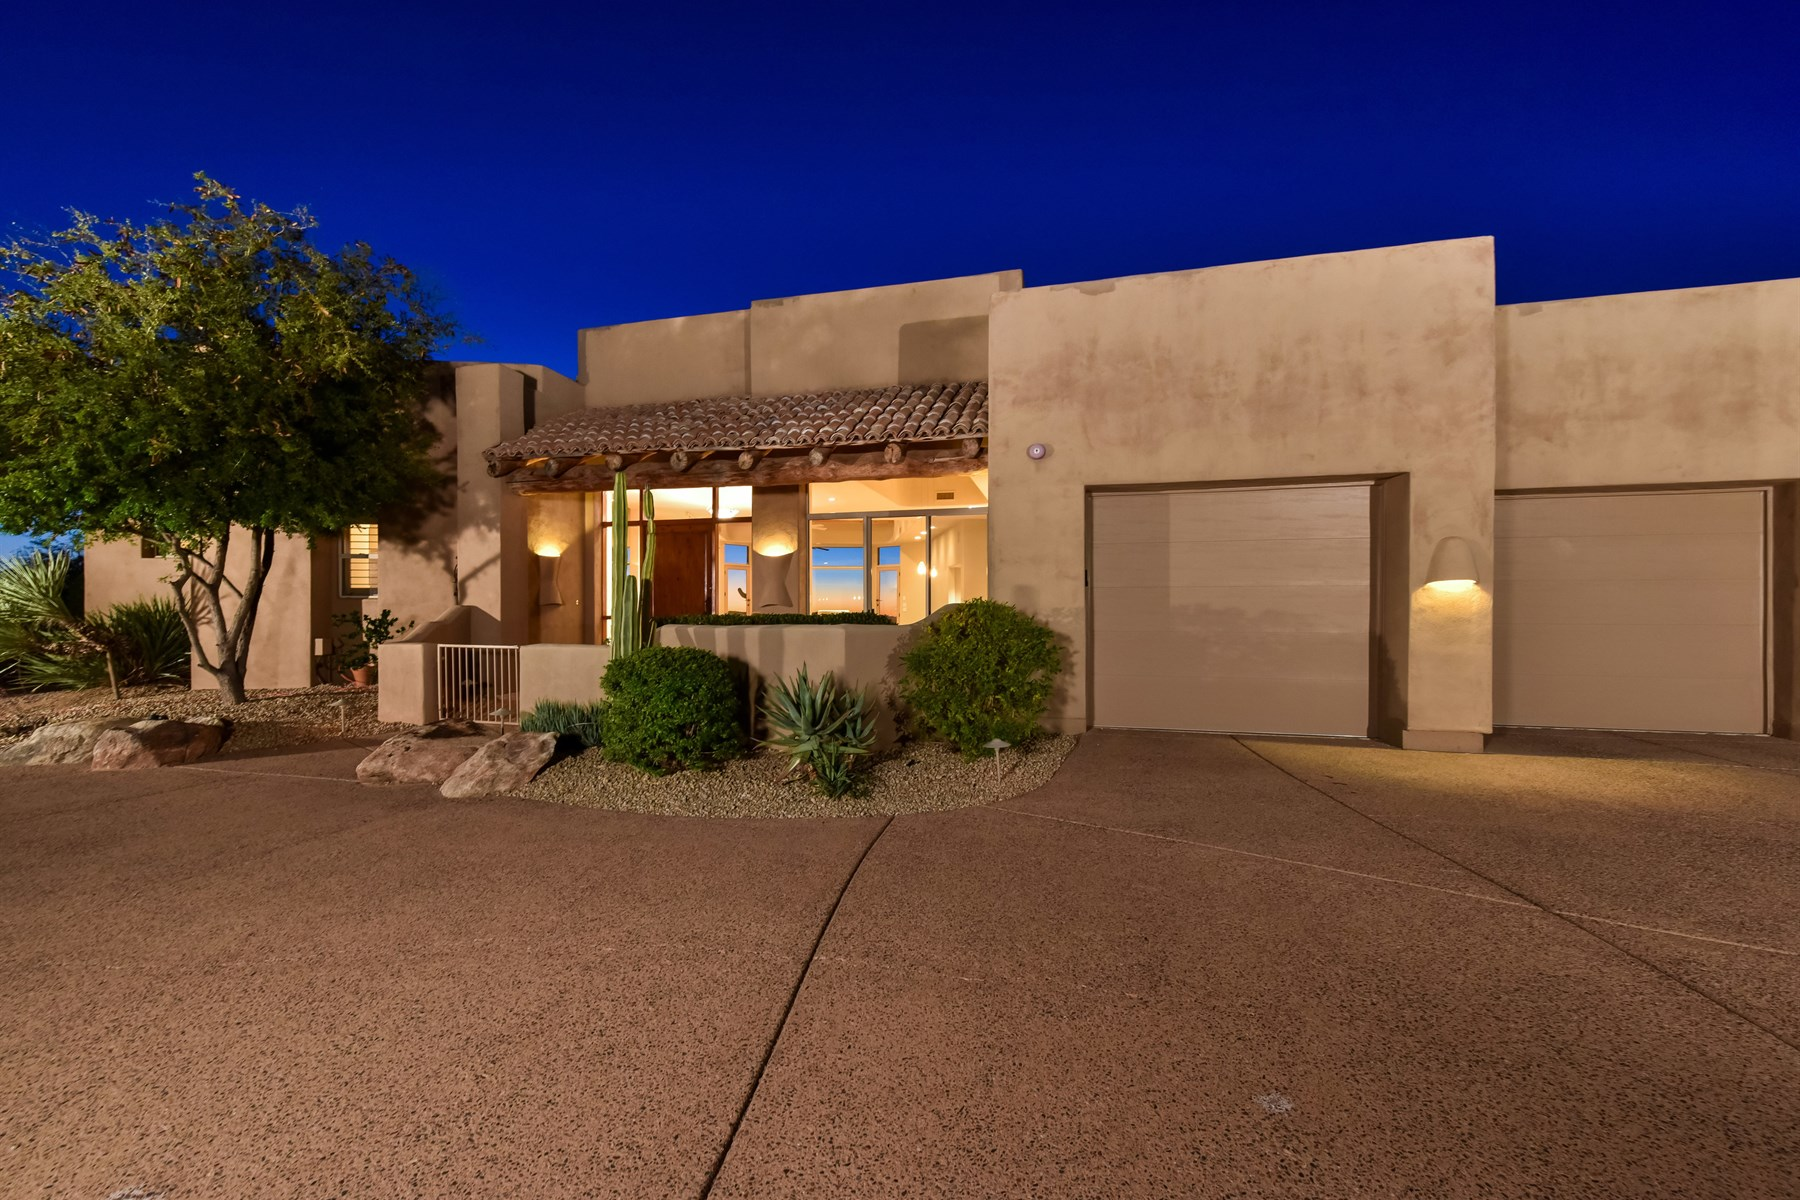 Single Family Home for Sale at Territorial accents and direct views of the infamous Pinnacle Peak 10684 E Candlewood Dr Scottsdale, Arizona, 85255 United States